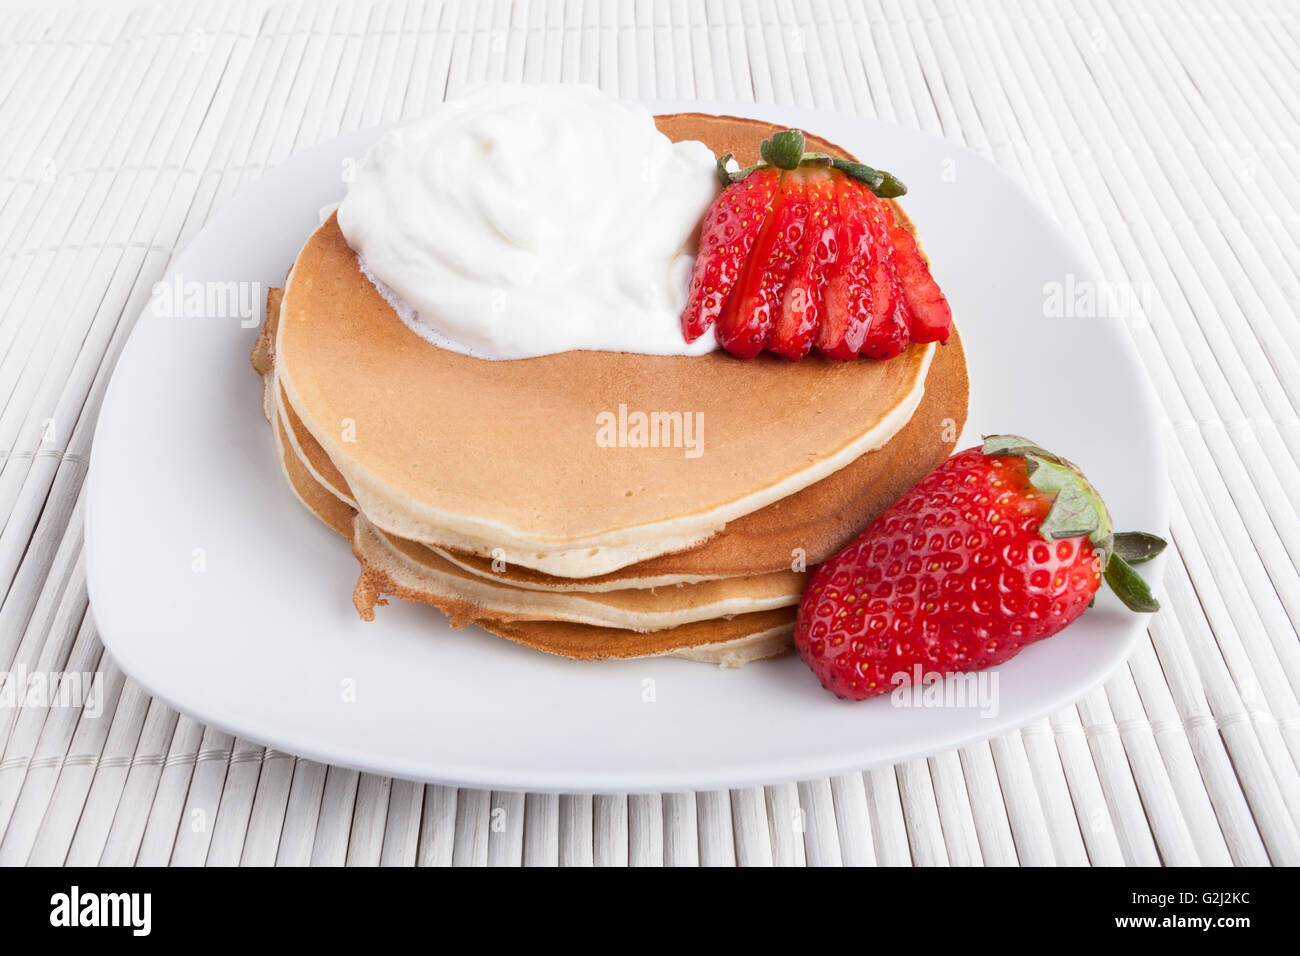 Pancakes on white plate and  background wiyh cream and strawberry - Stock Image